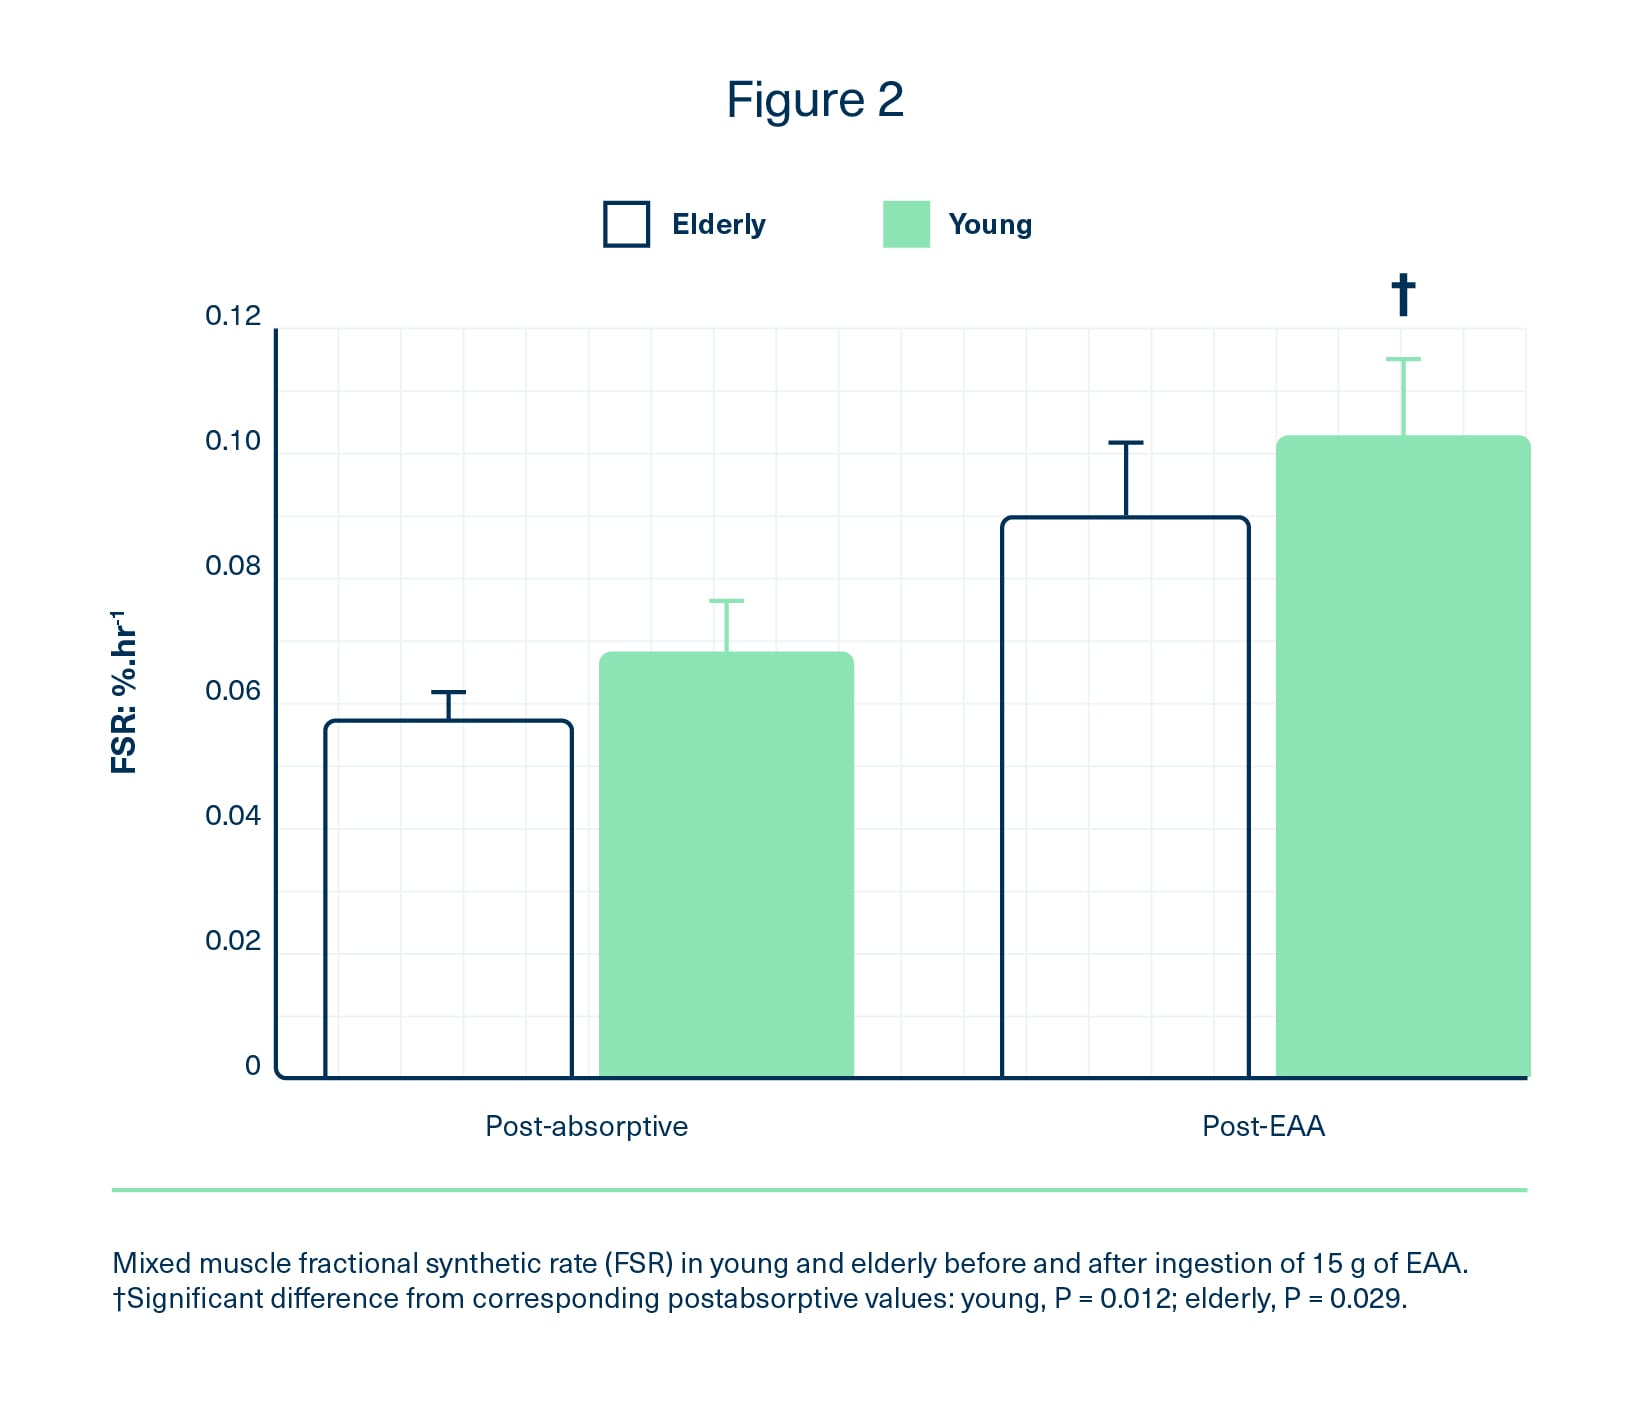 Fractional synthetic rate in young and elderly before and after ingestion of 15 g EAAs